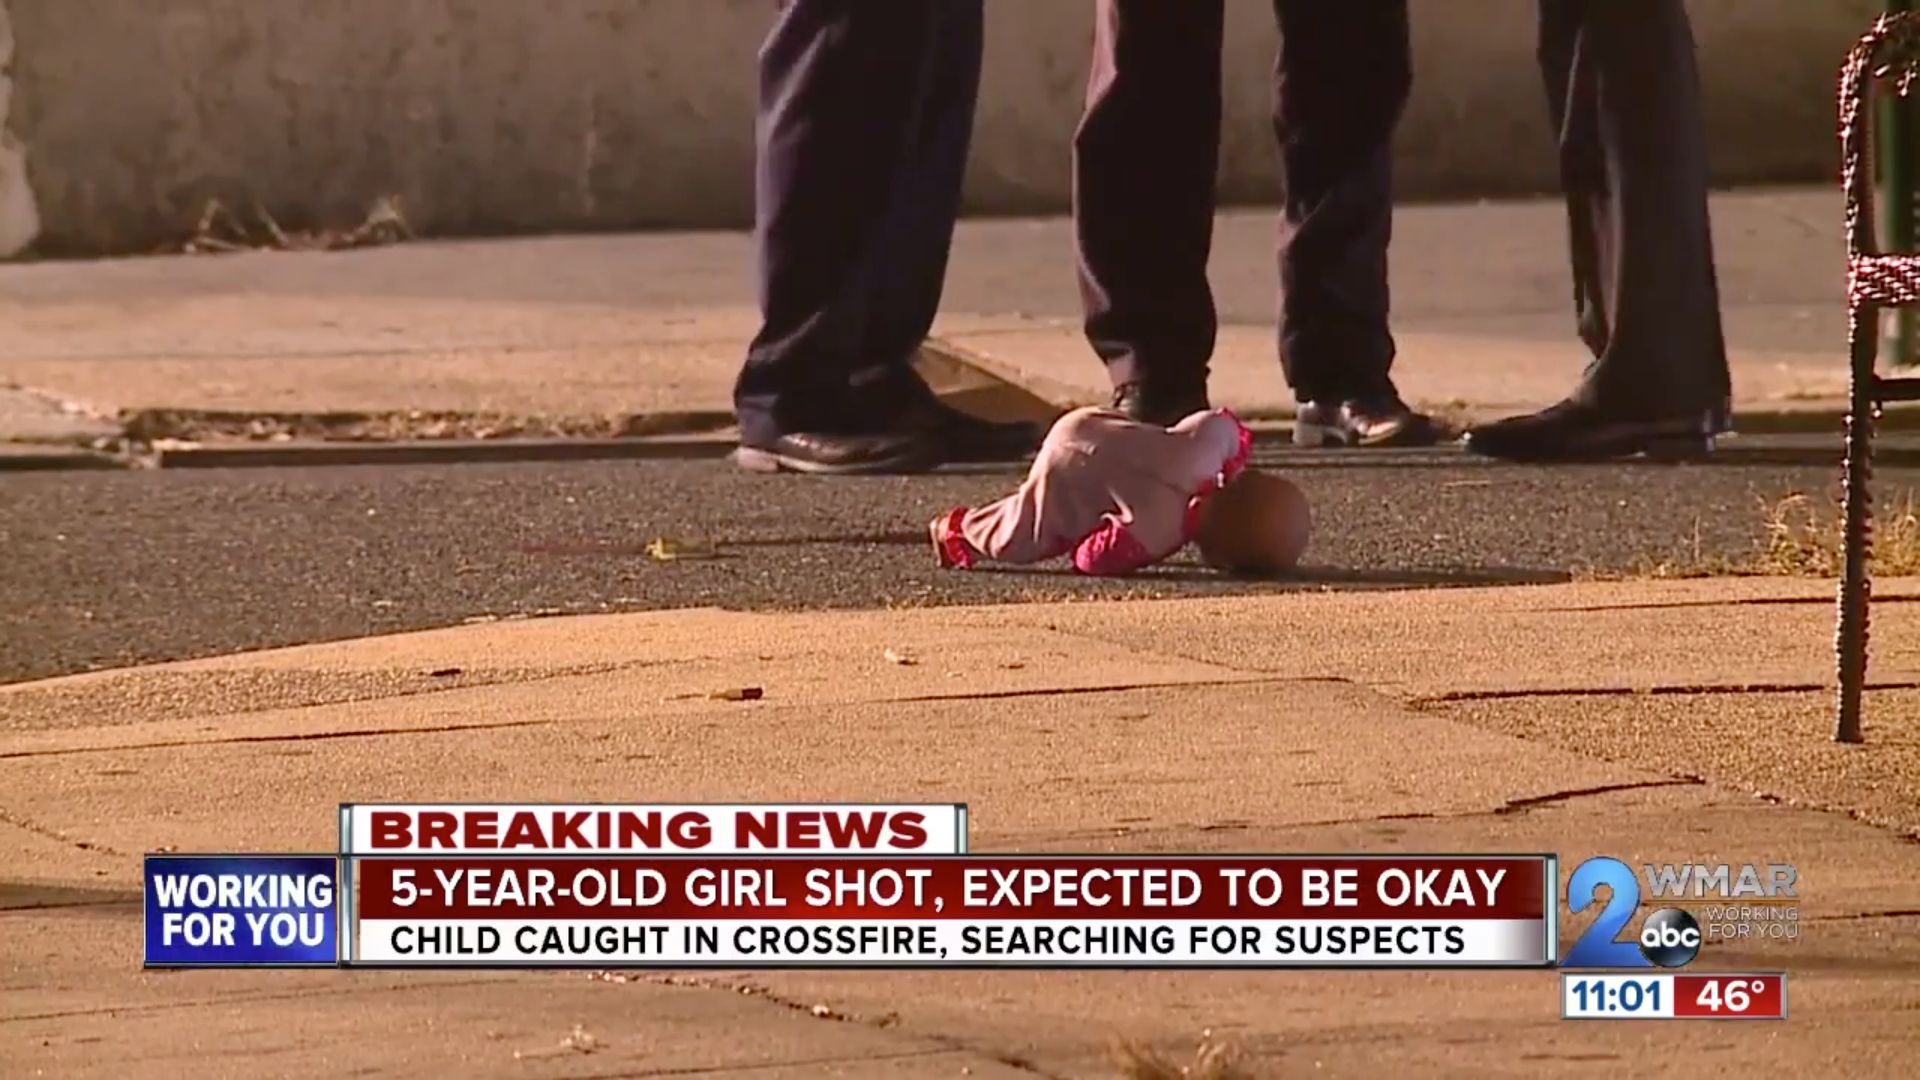 Baltimore shooting wounds 5-year-old girl